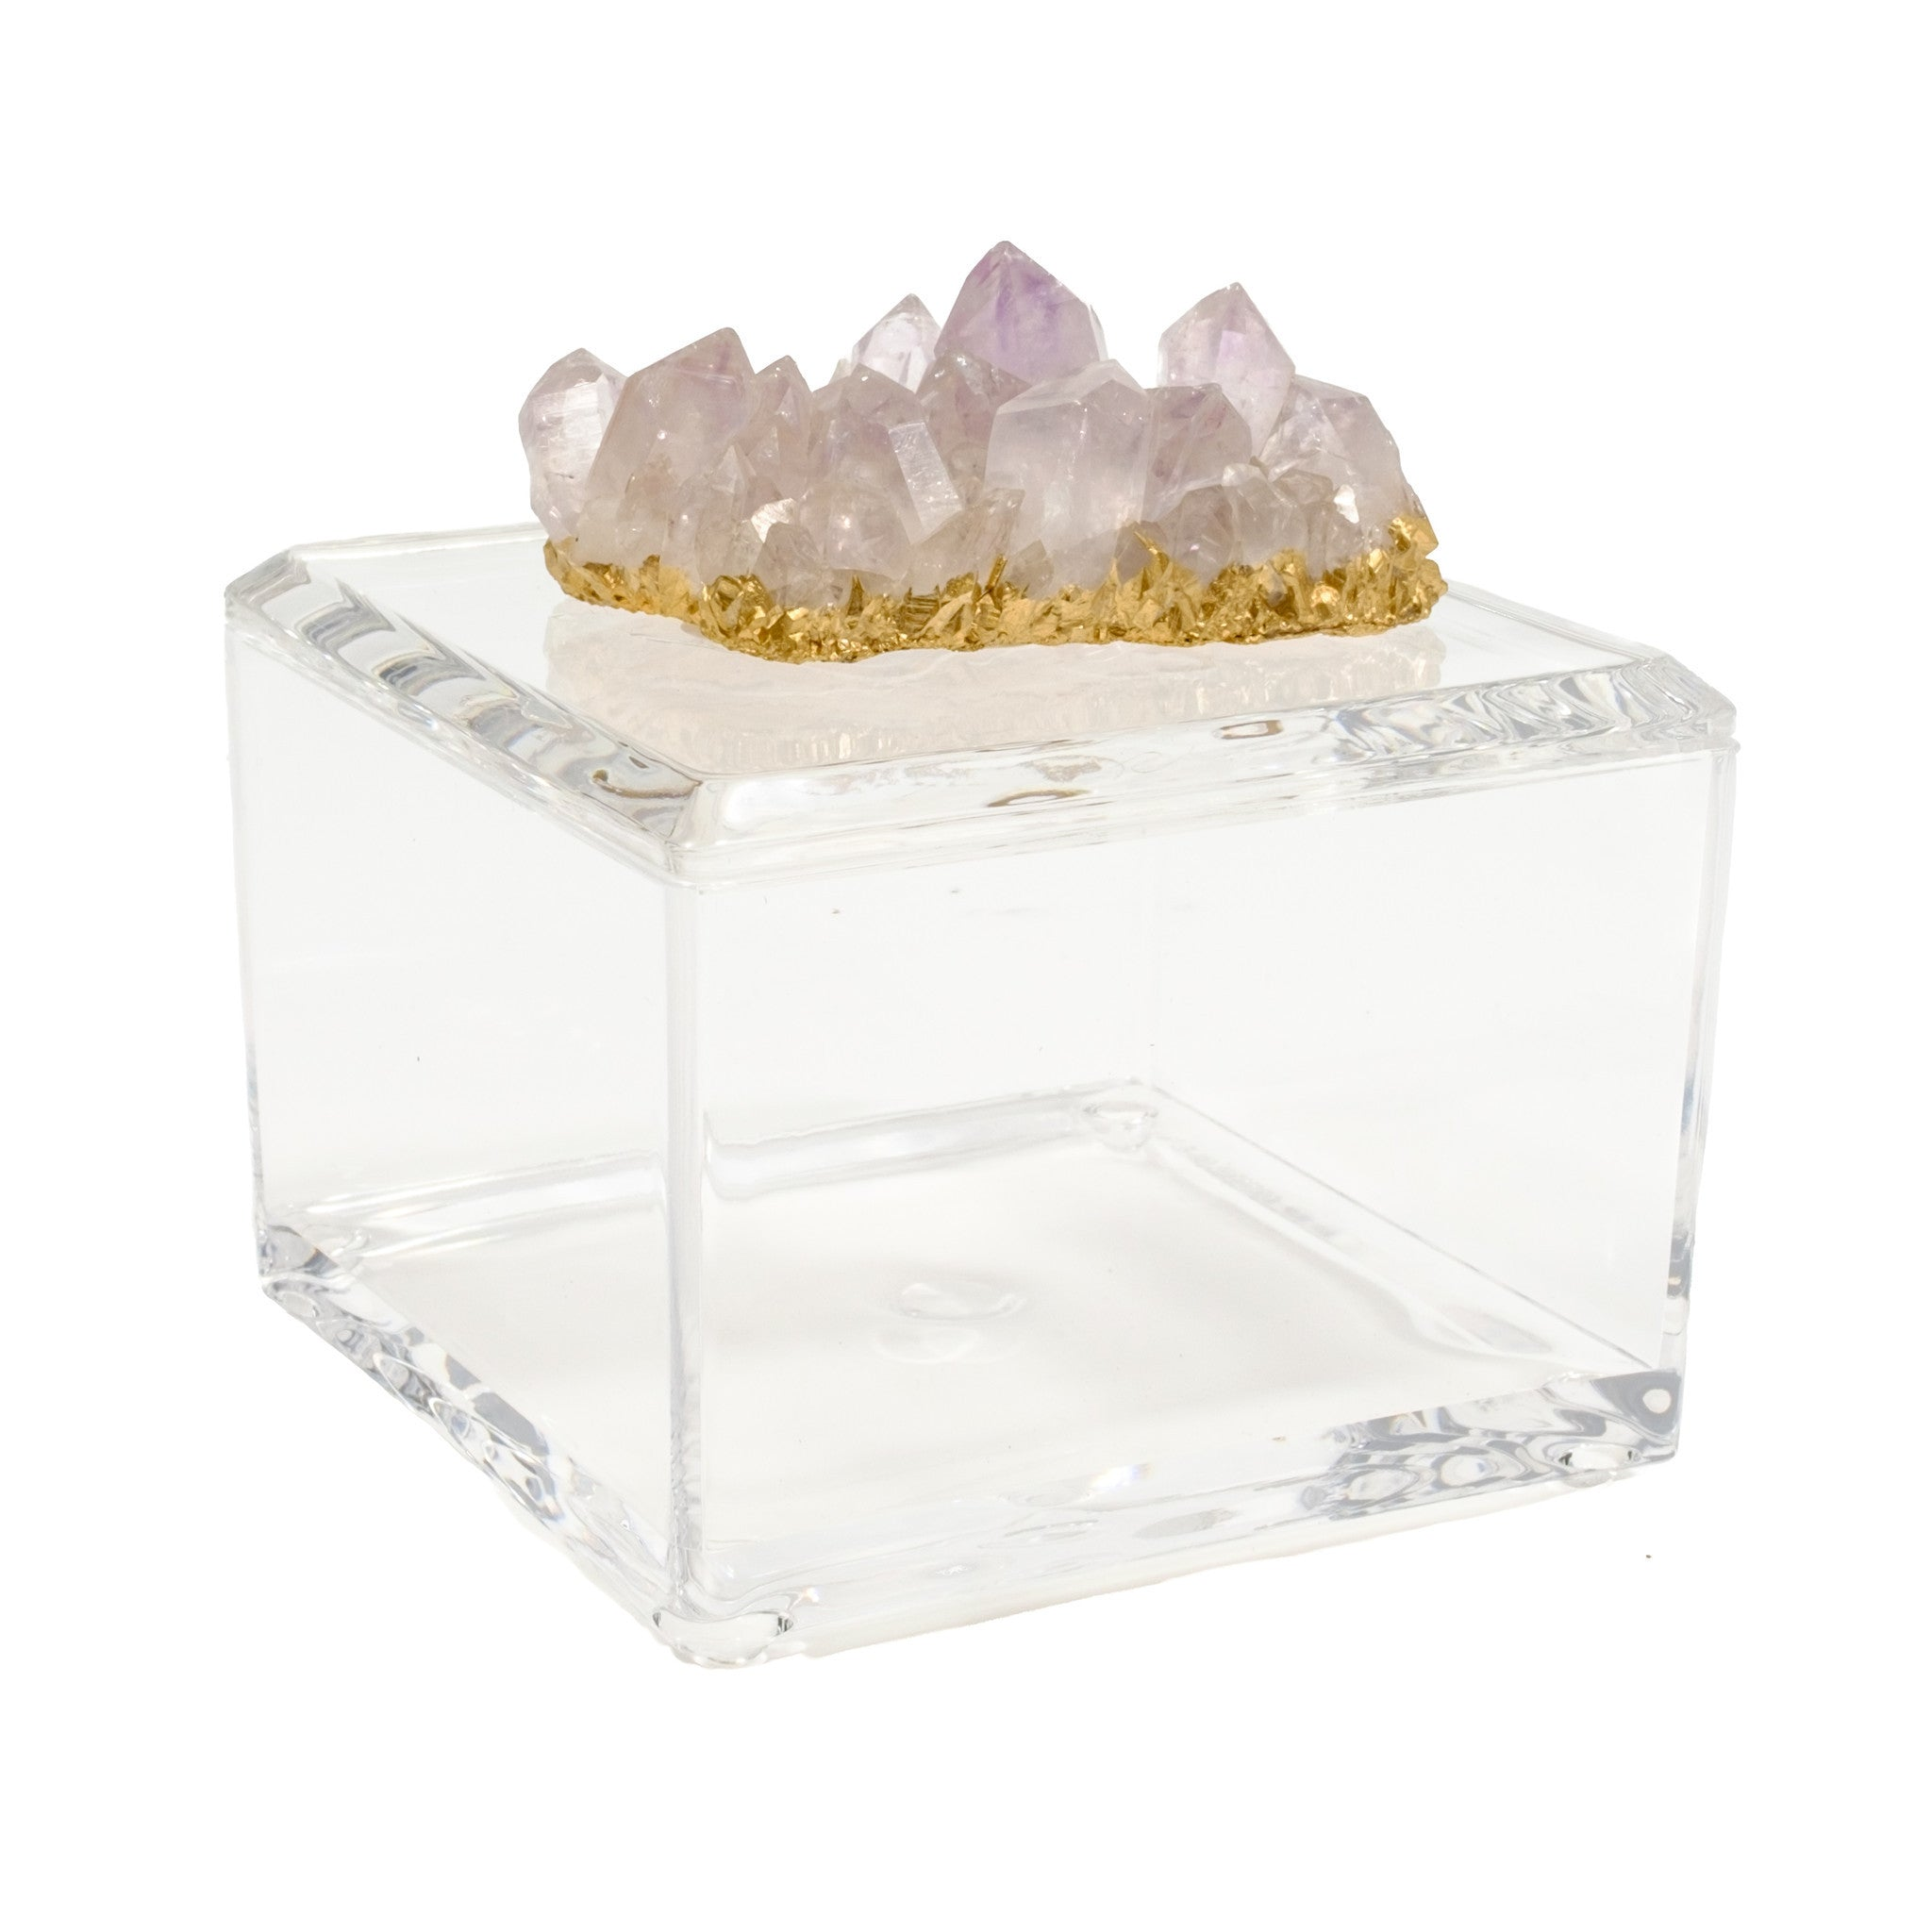 Small Acrylic Box w/ Zambian Amethyst and Gilded Gold